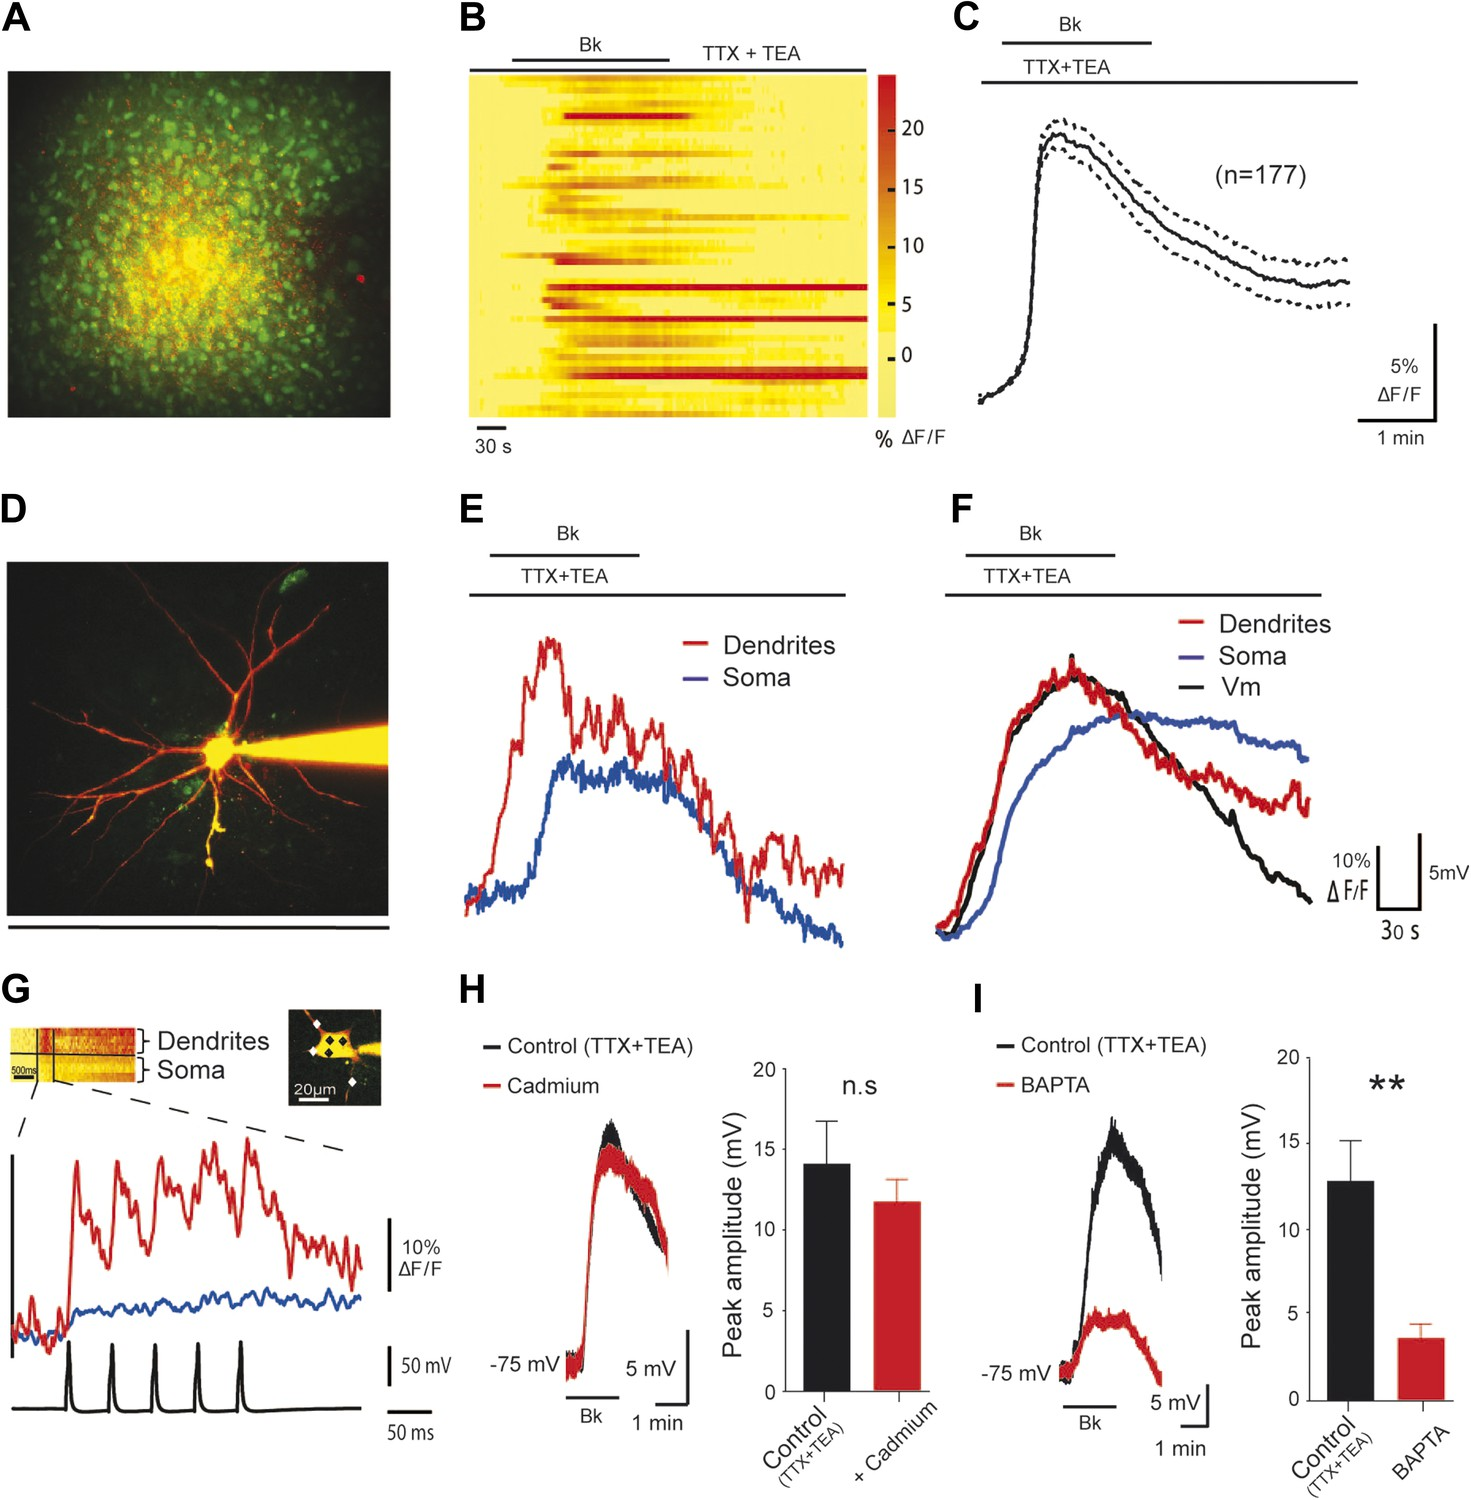 Sensitization Of Neonatal Rat Lumbar Motoneuron By The Inflammatory Electronic Circuits Basic Calculations And Equations Attila39s Bk Induced Depolarization Motoneurons Is Associated With Ca2 I Rise In Dendrites